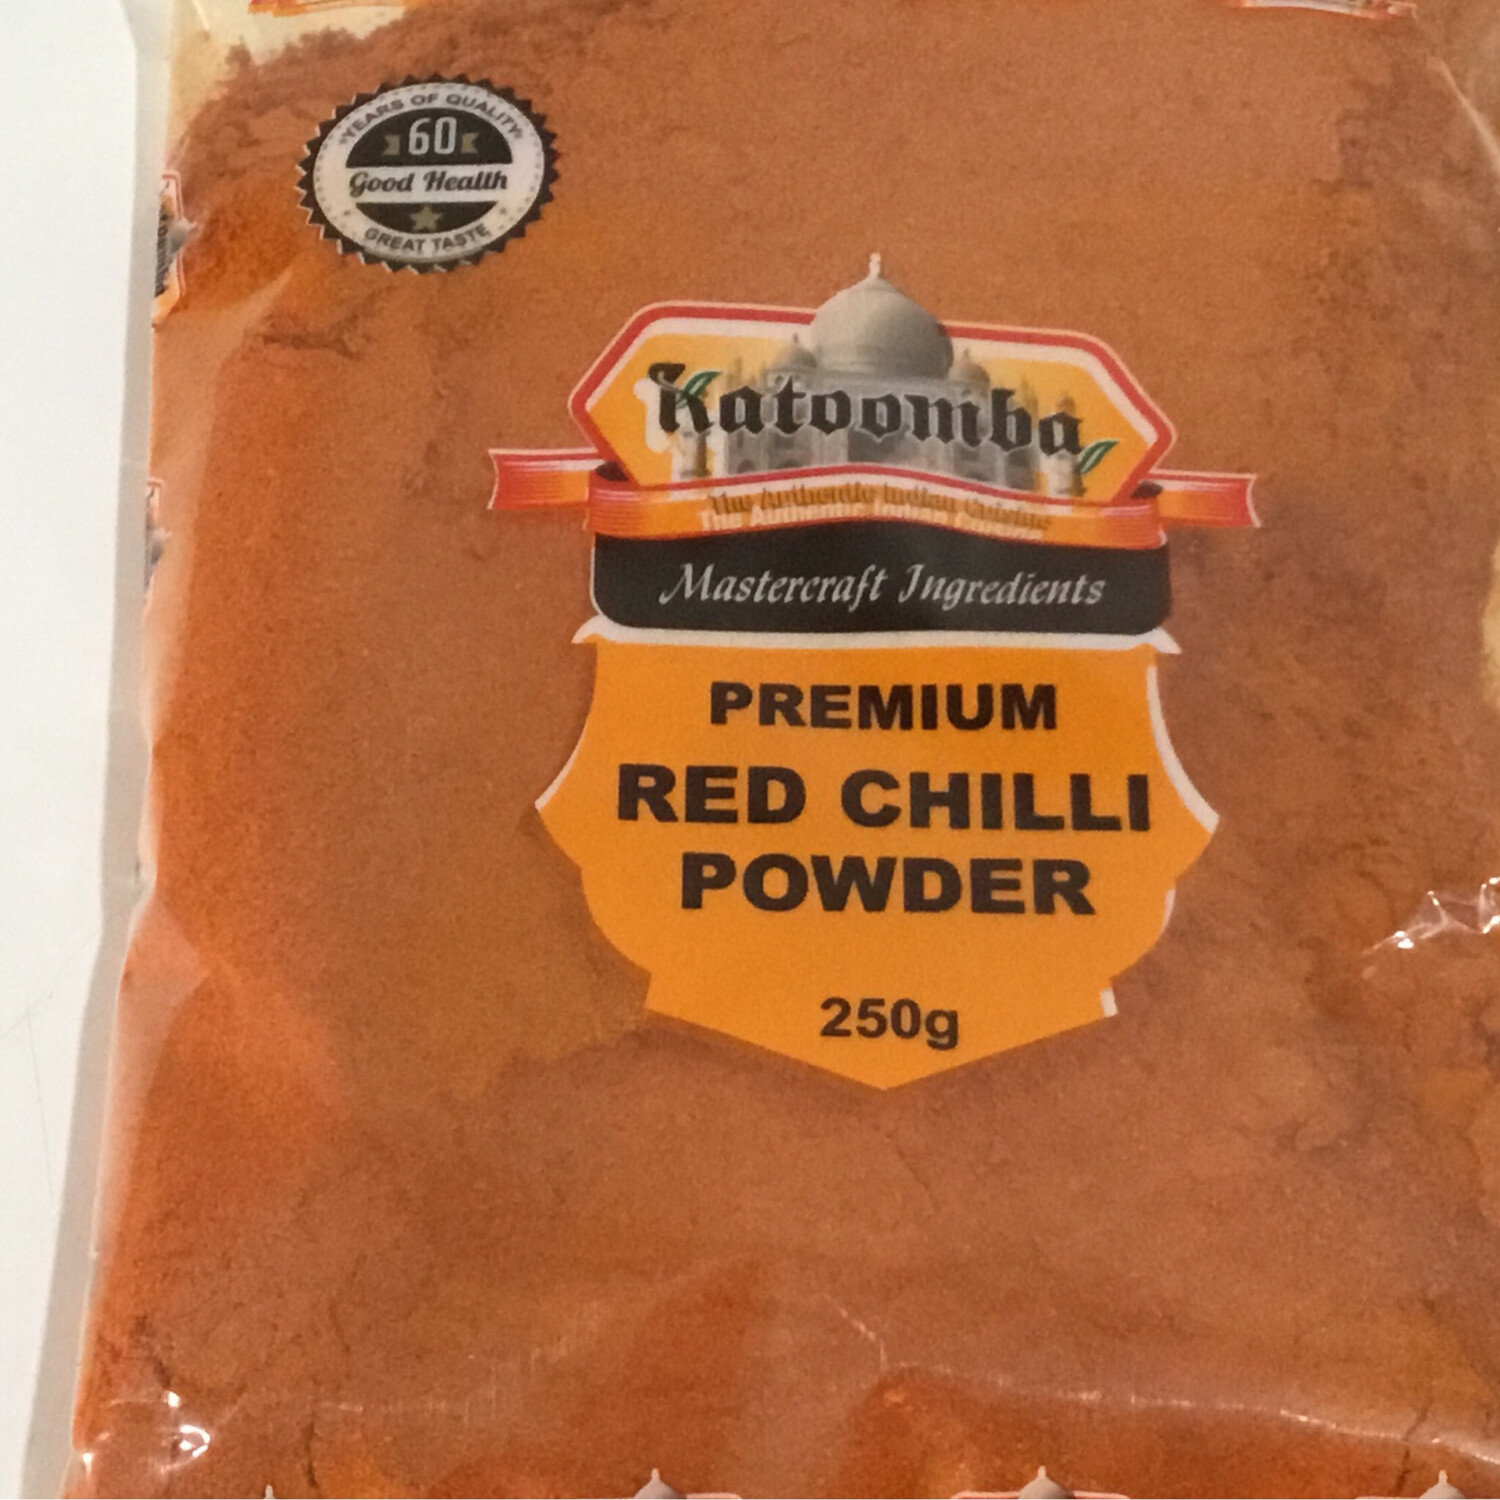 KATOOMBA RED CHILLI POWDER 250 G